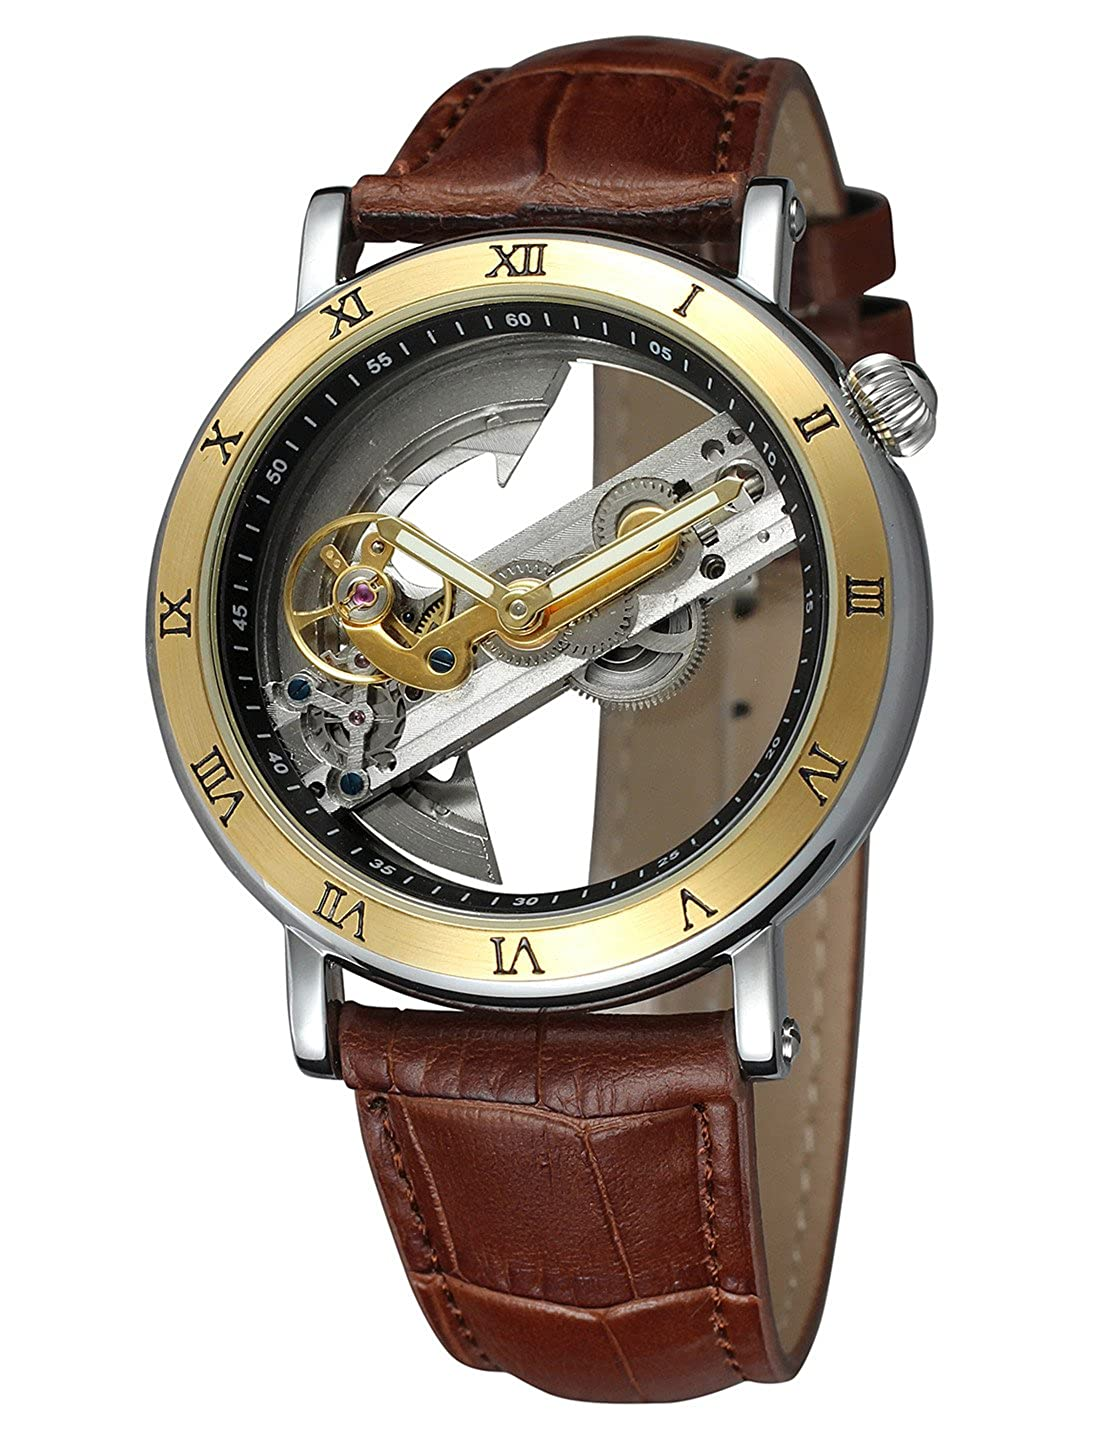 Amazon.com: Shaarms Automatic Wristwatch Transparent Dial Mechanical Leather Watches Mens Analog Watch L1003 GBrown: Watches